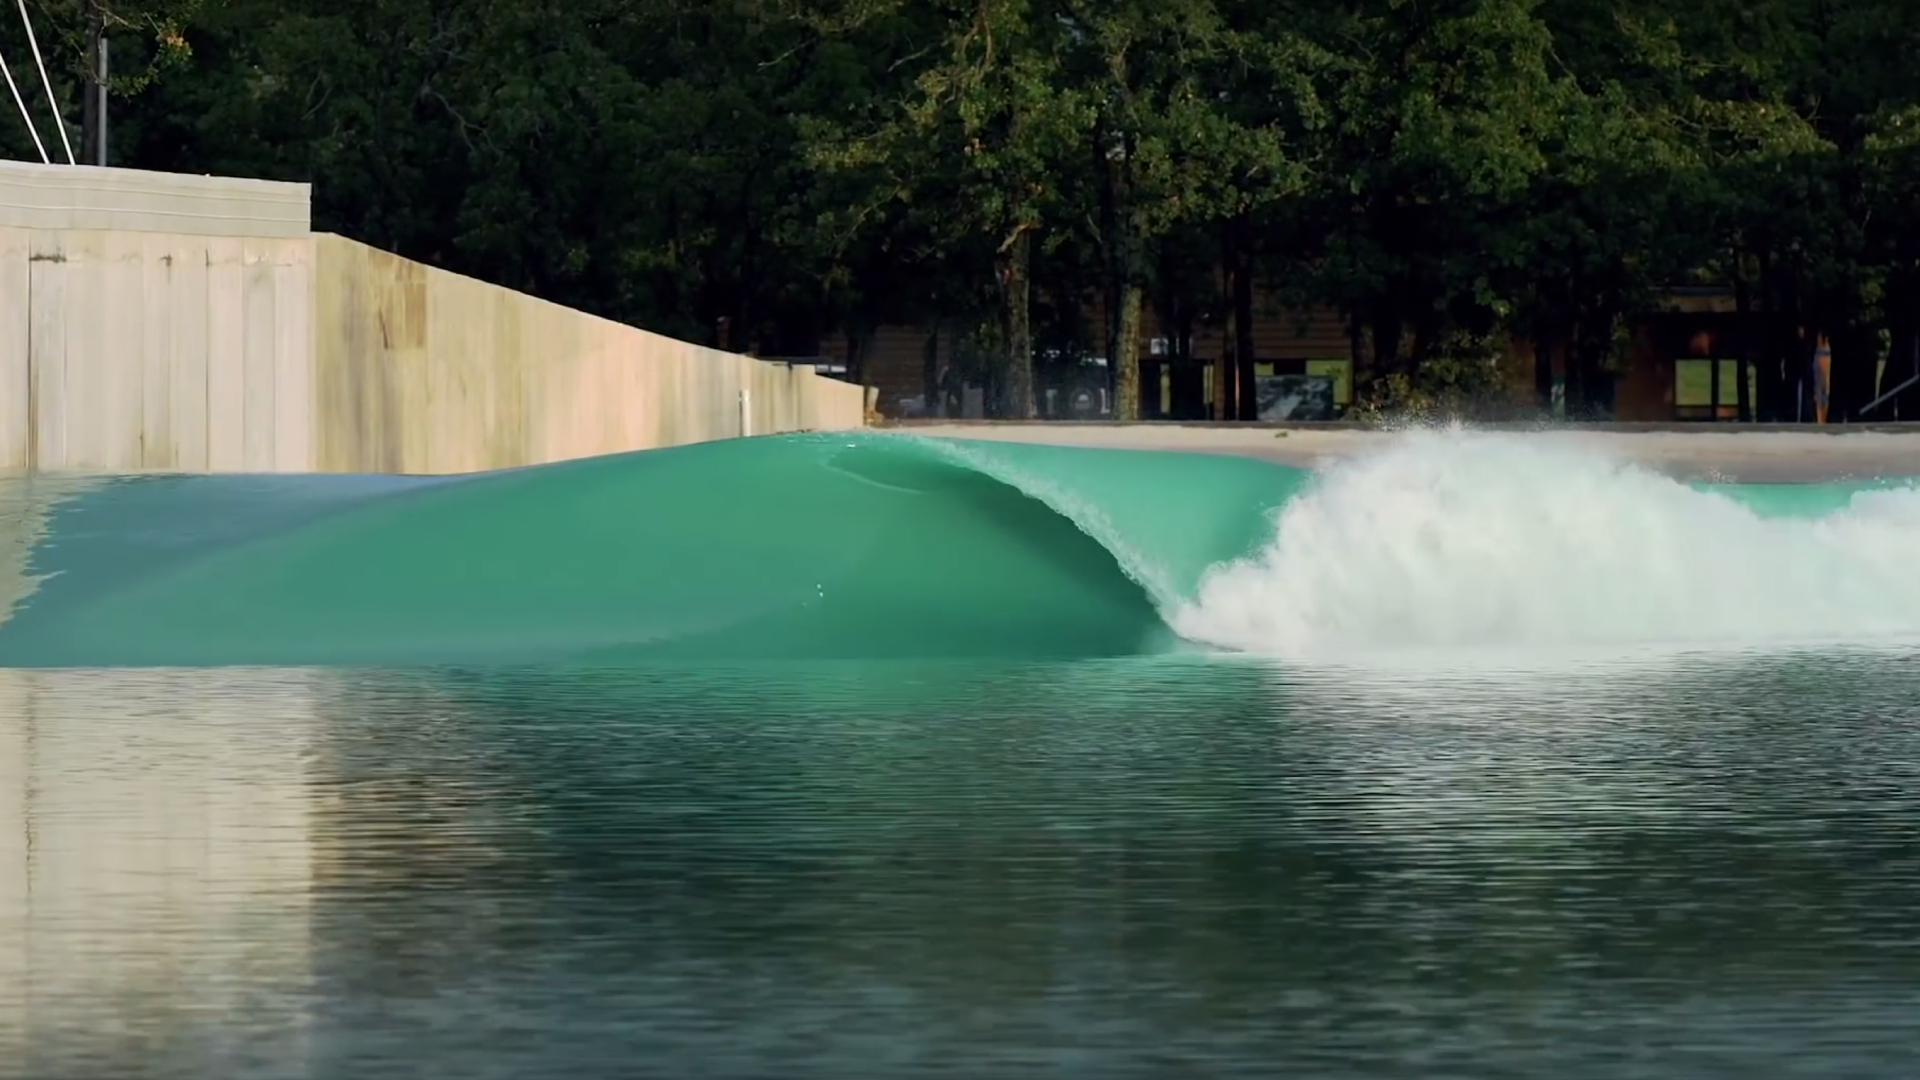 Waco wave pool BSR Surf Resort